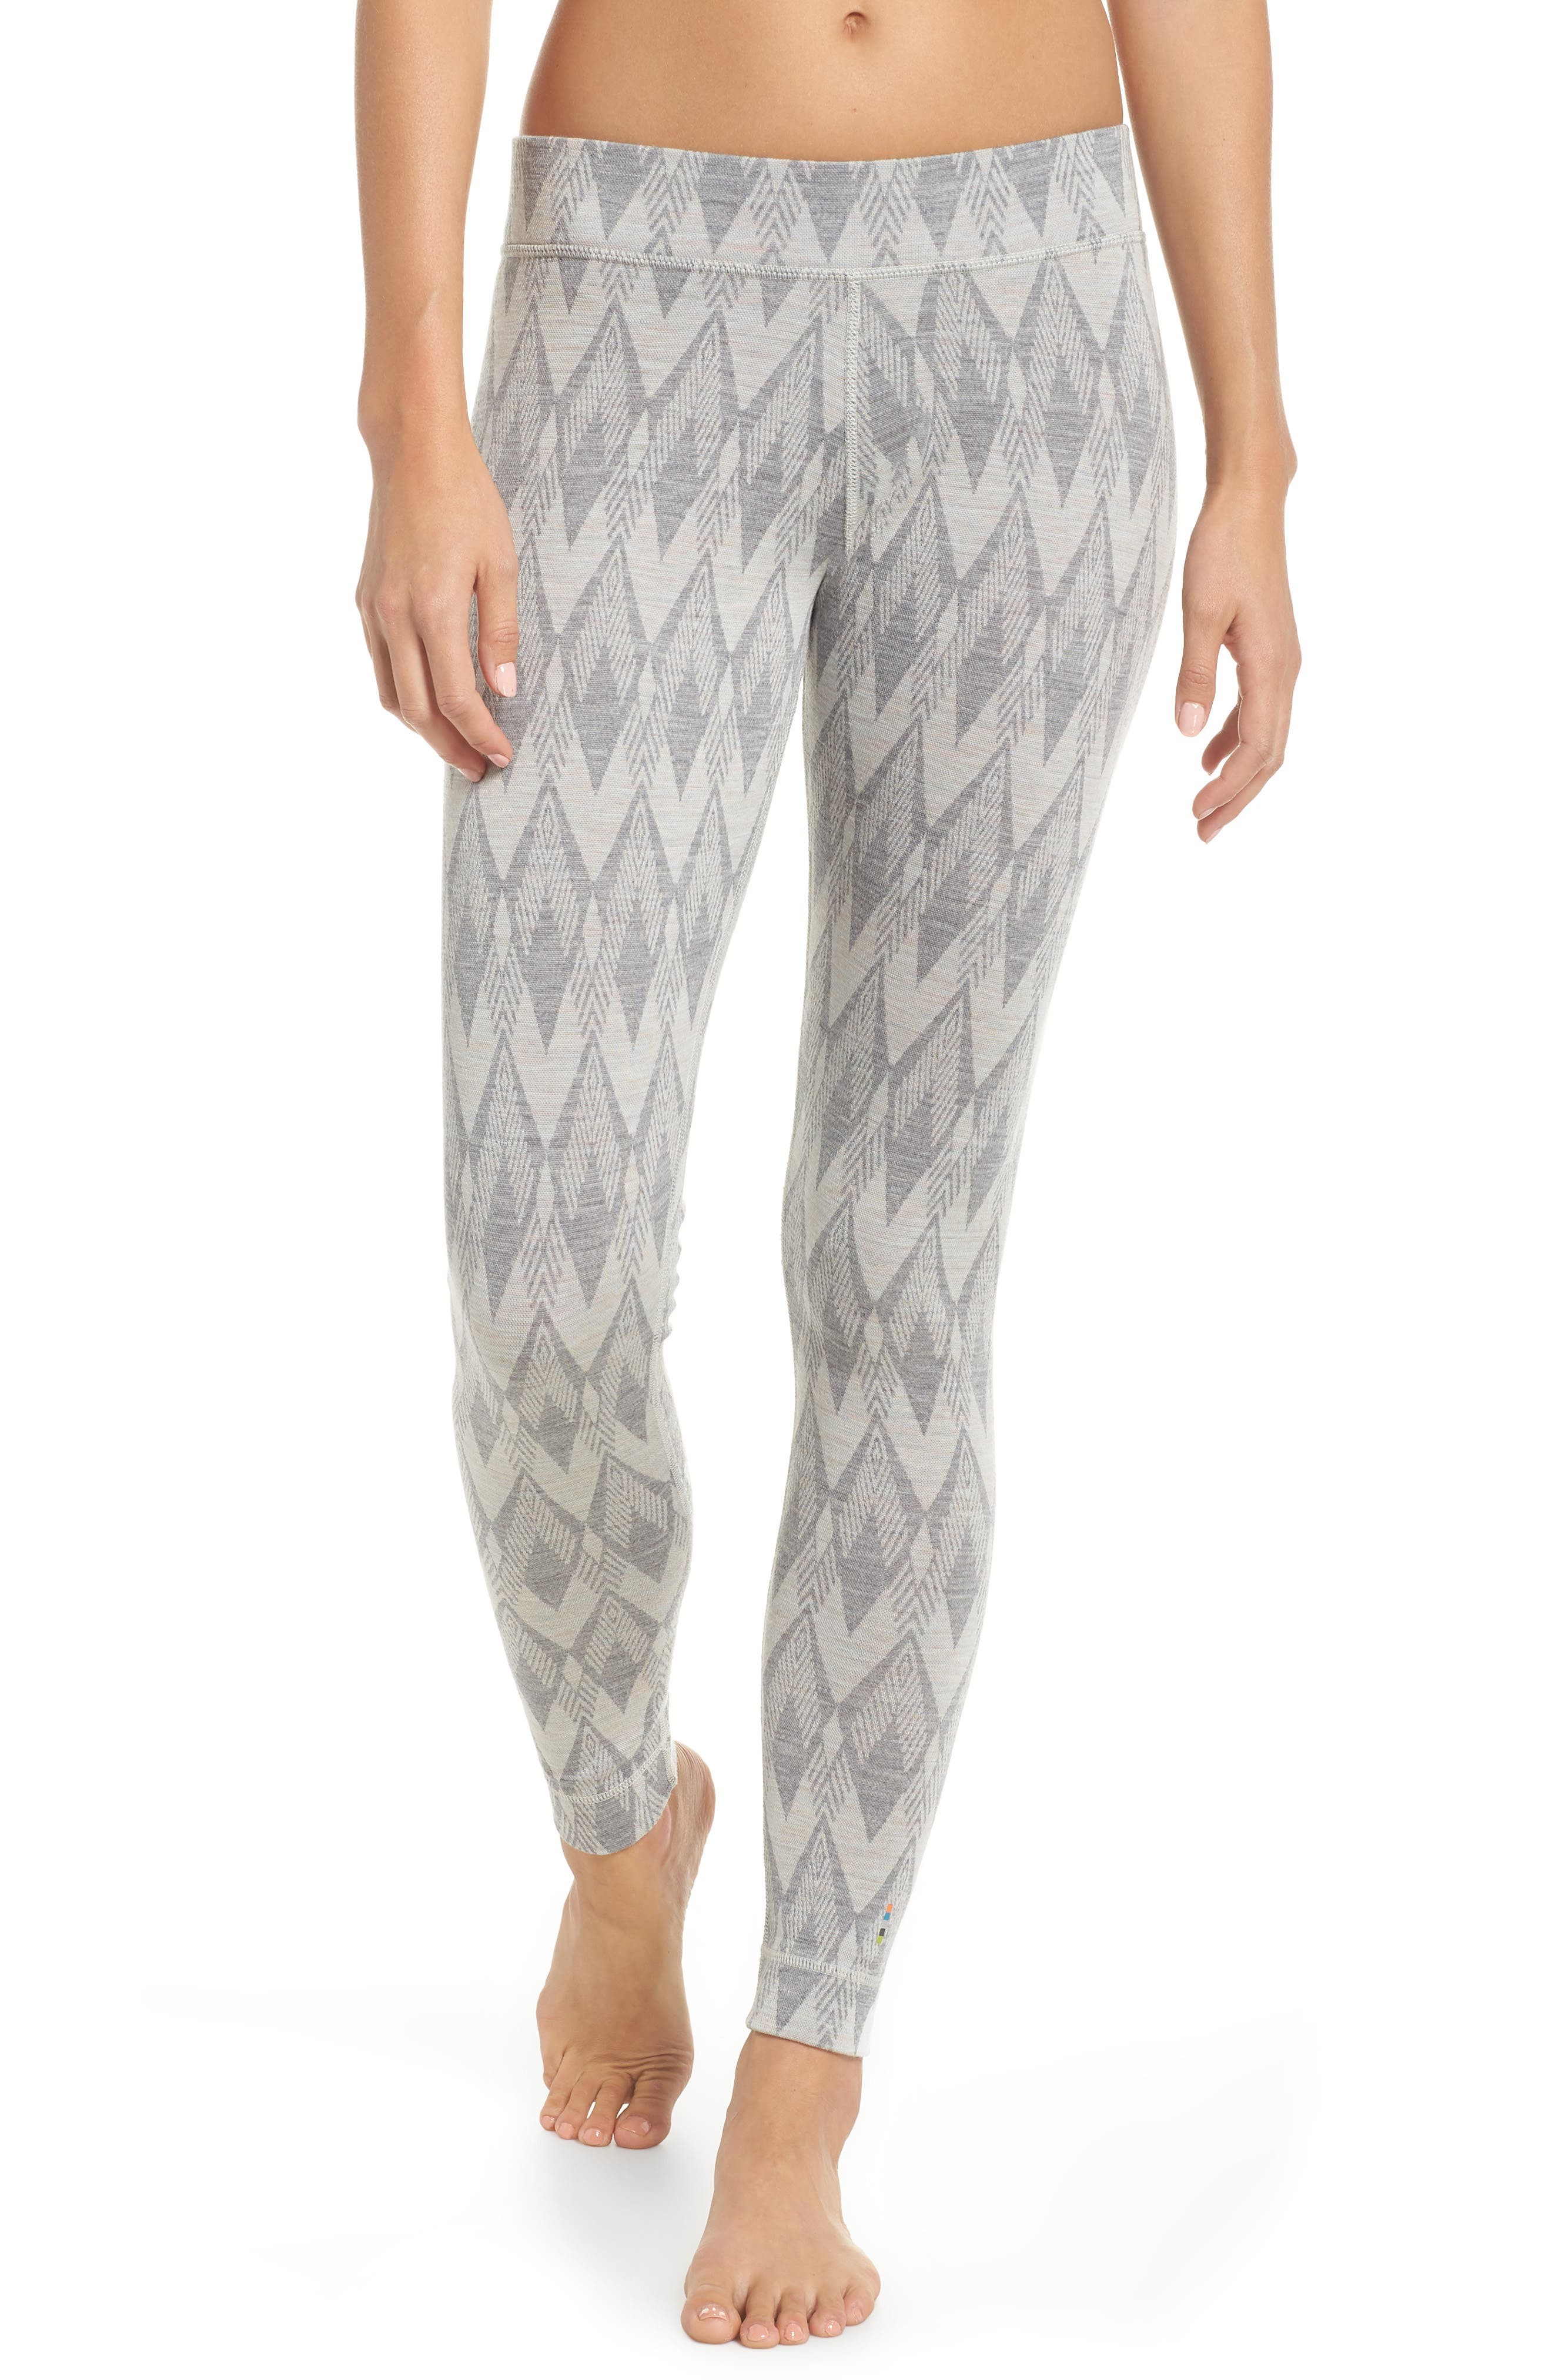 Merino 250 Base Layer Pattern Bottoms,                             Main thumbnail 1, color,                             LIGHT GREY/ MOONBEAM HEATHER